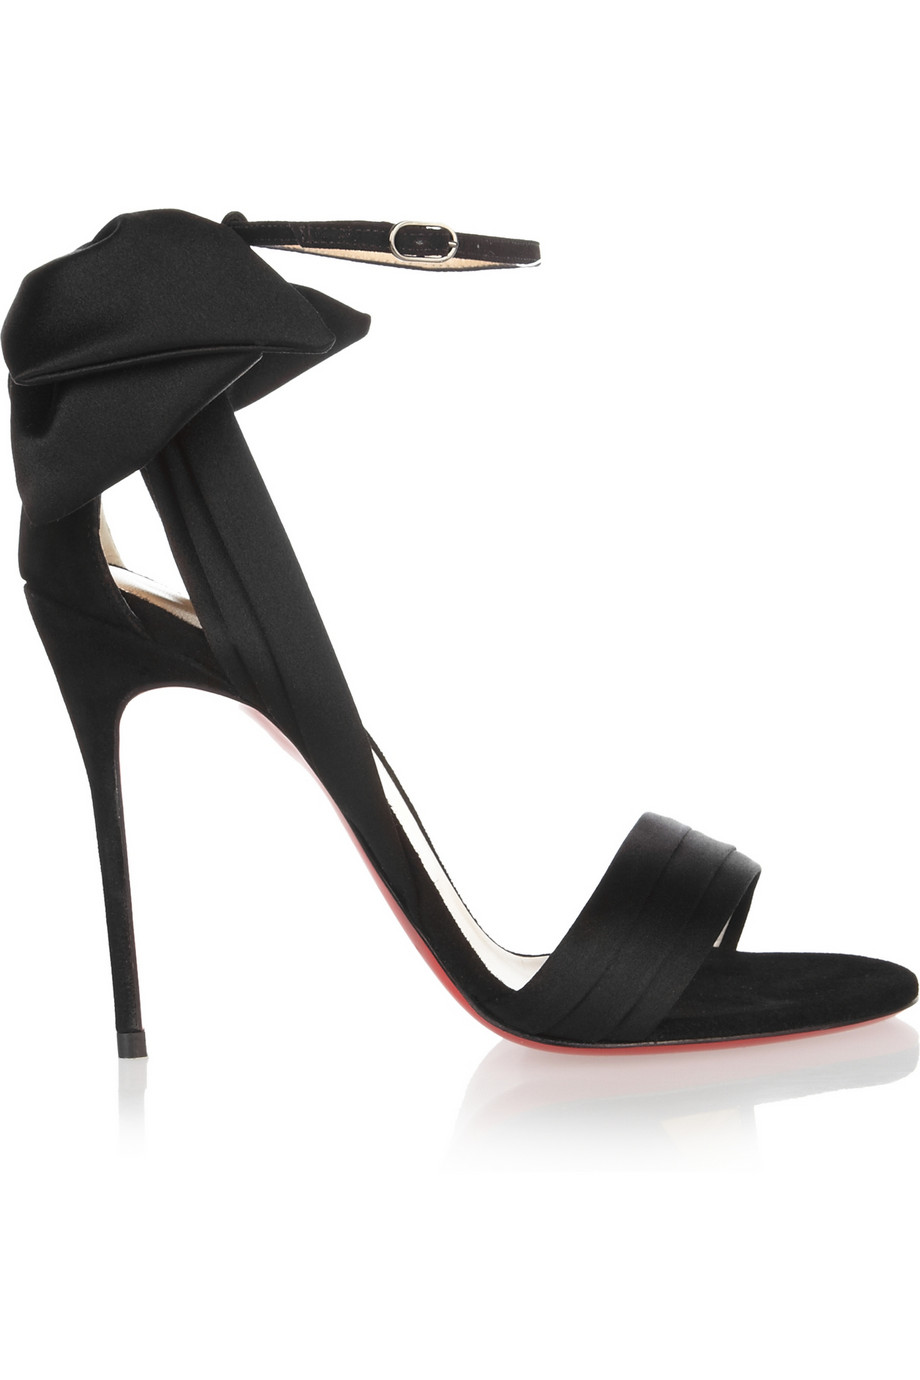 on sale 5ce2f d5d4d Christian Louboutin Black Vampanodo Satin and Suede Sandals